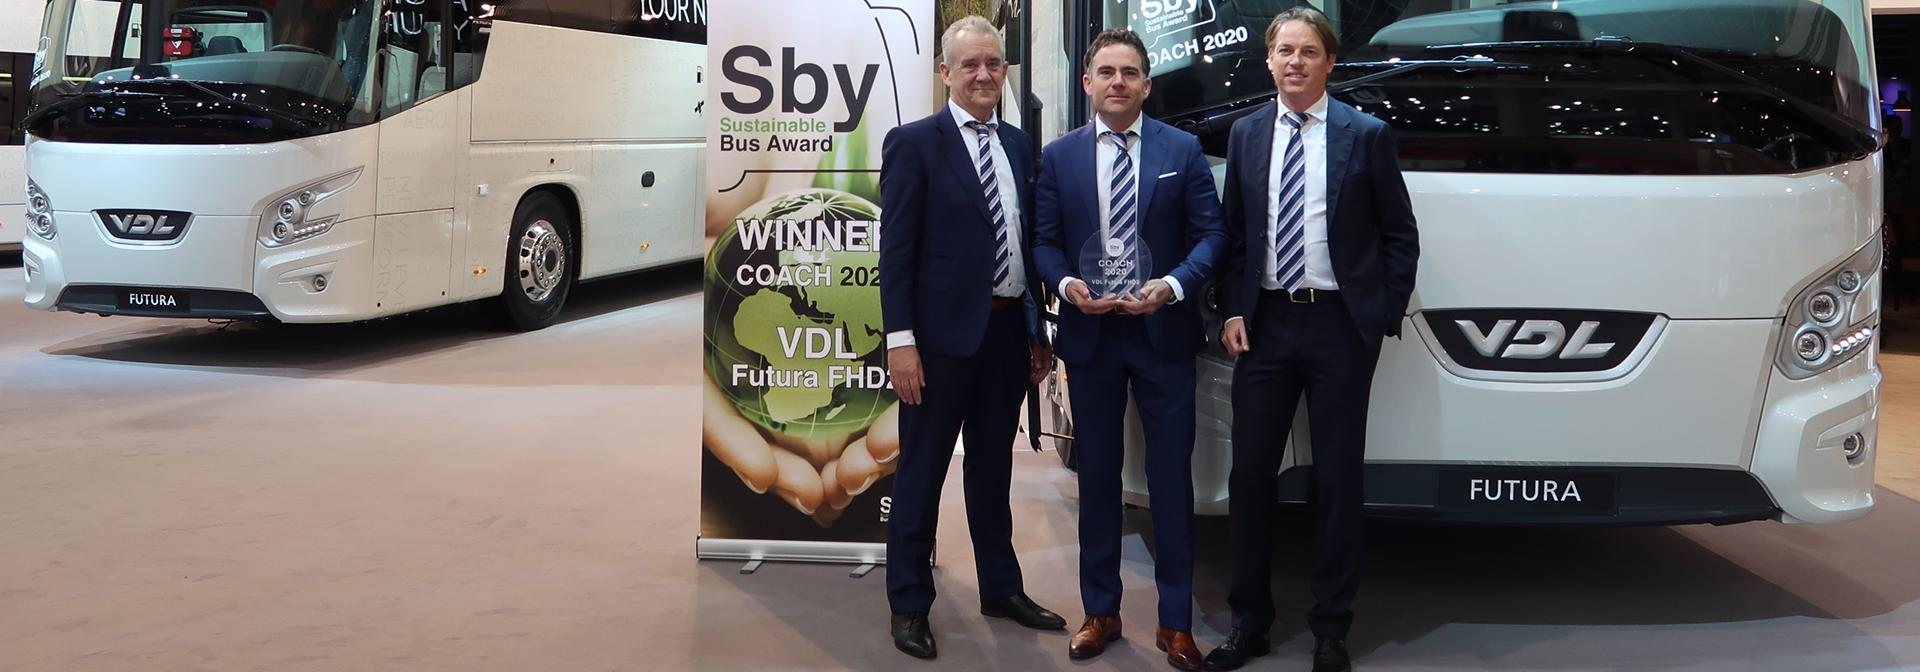 sustainable bus award sby